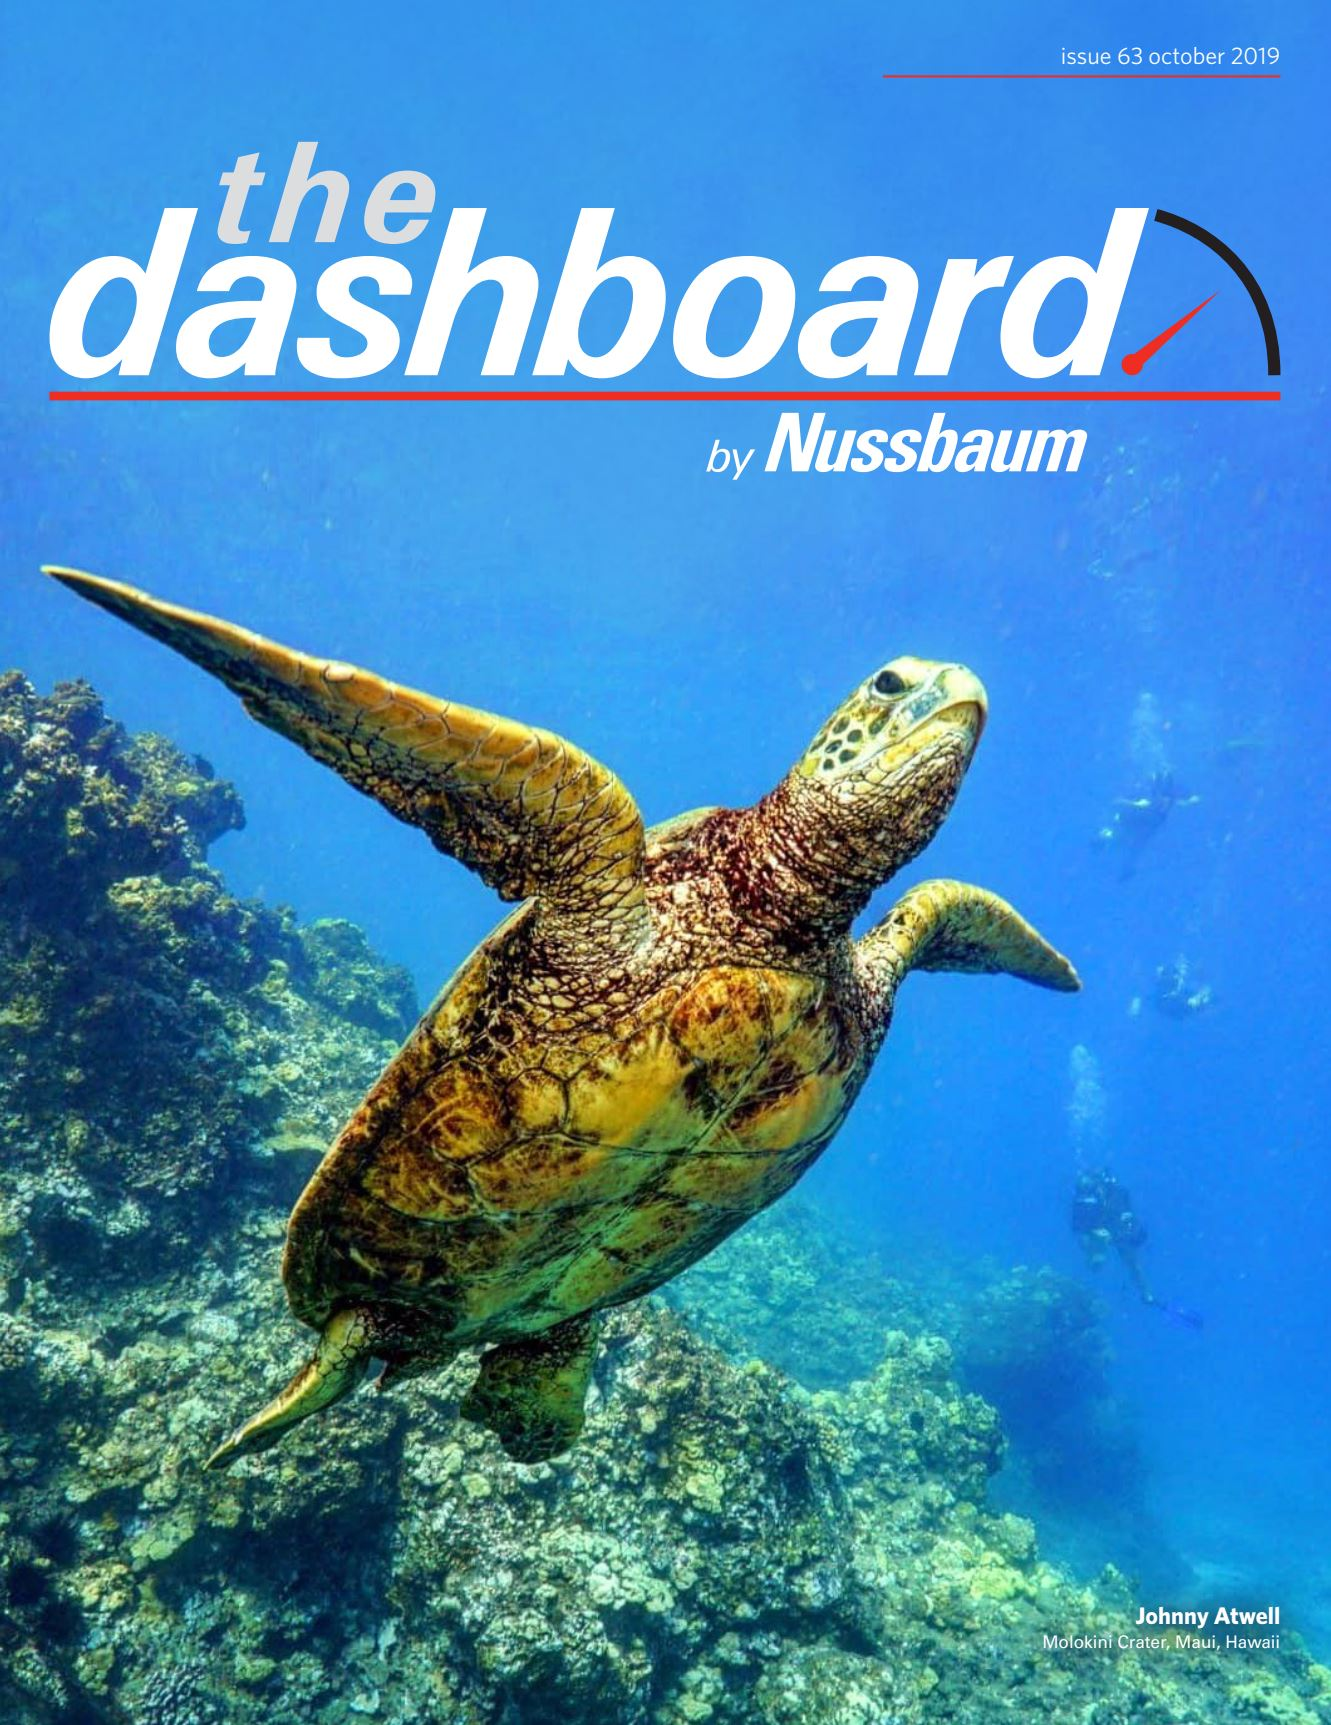 The Dashboard by Nussbaum